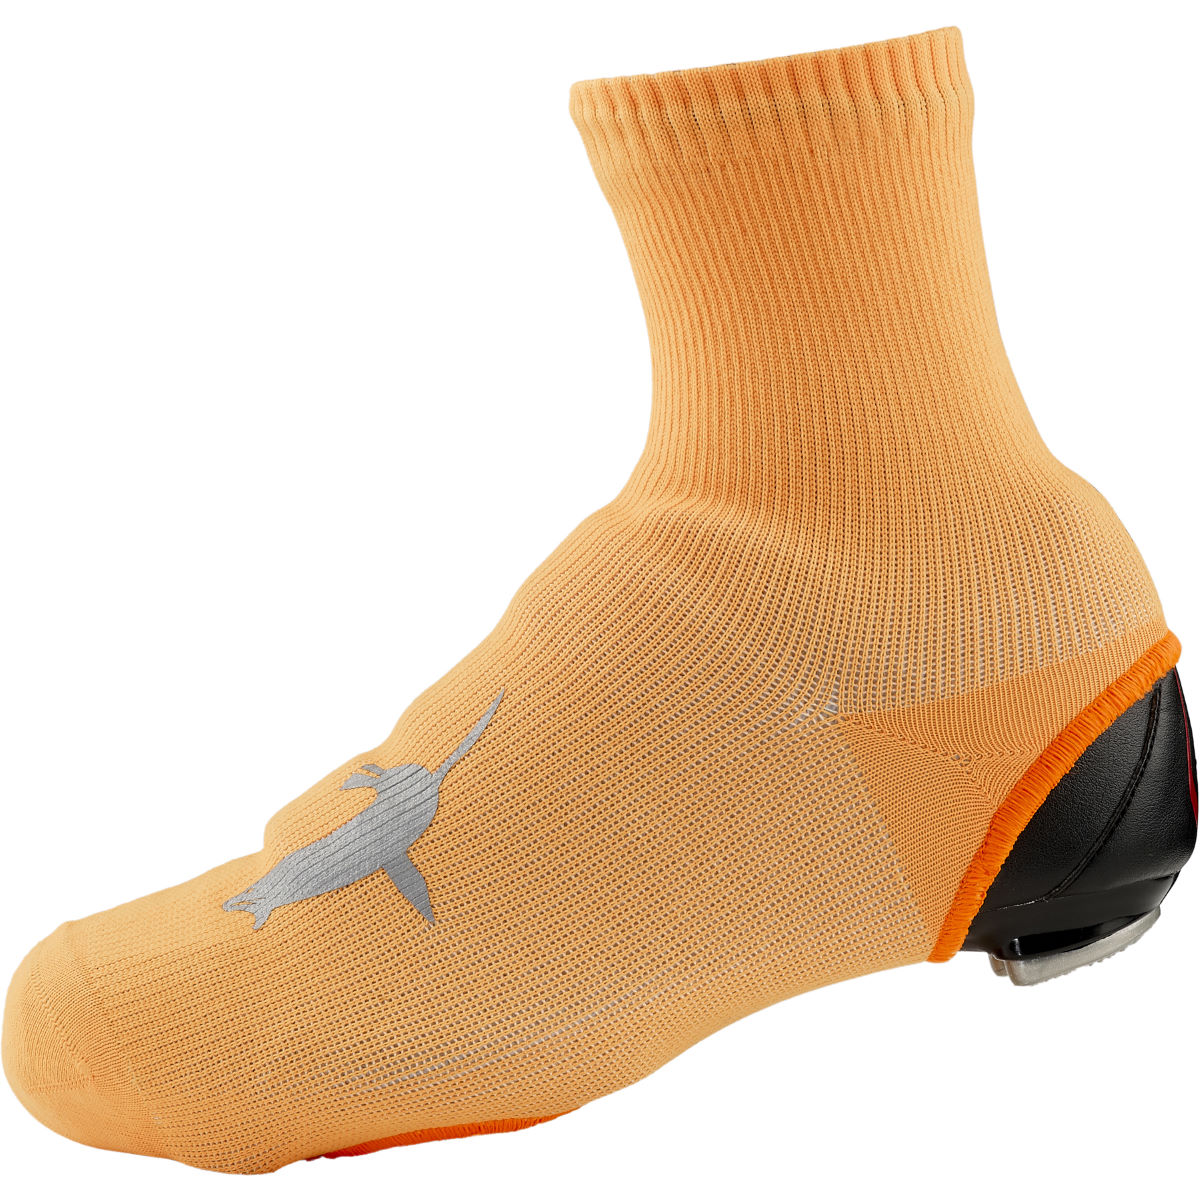 Couvre-chaussures SealSkinz Waterproof - XL Orange Couvre-chaussures